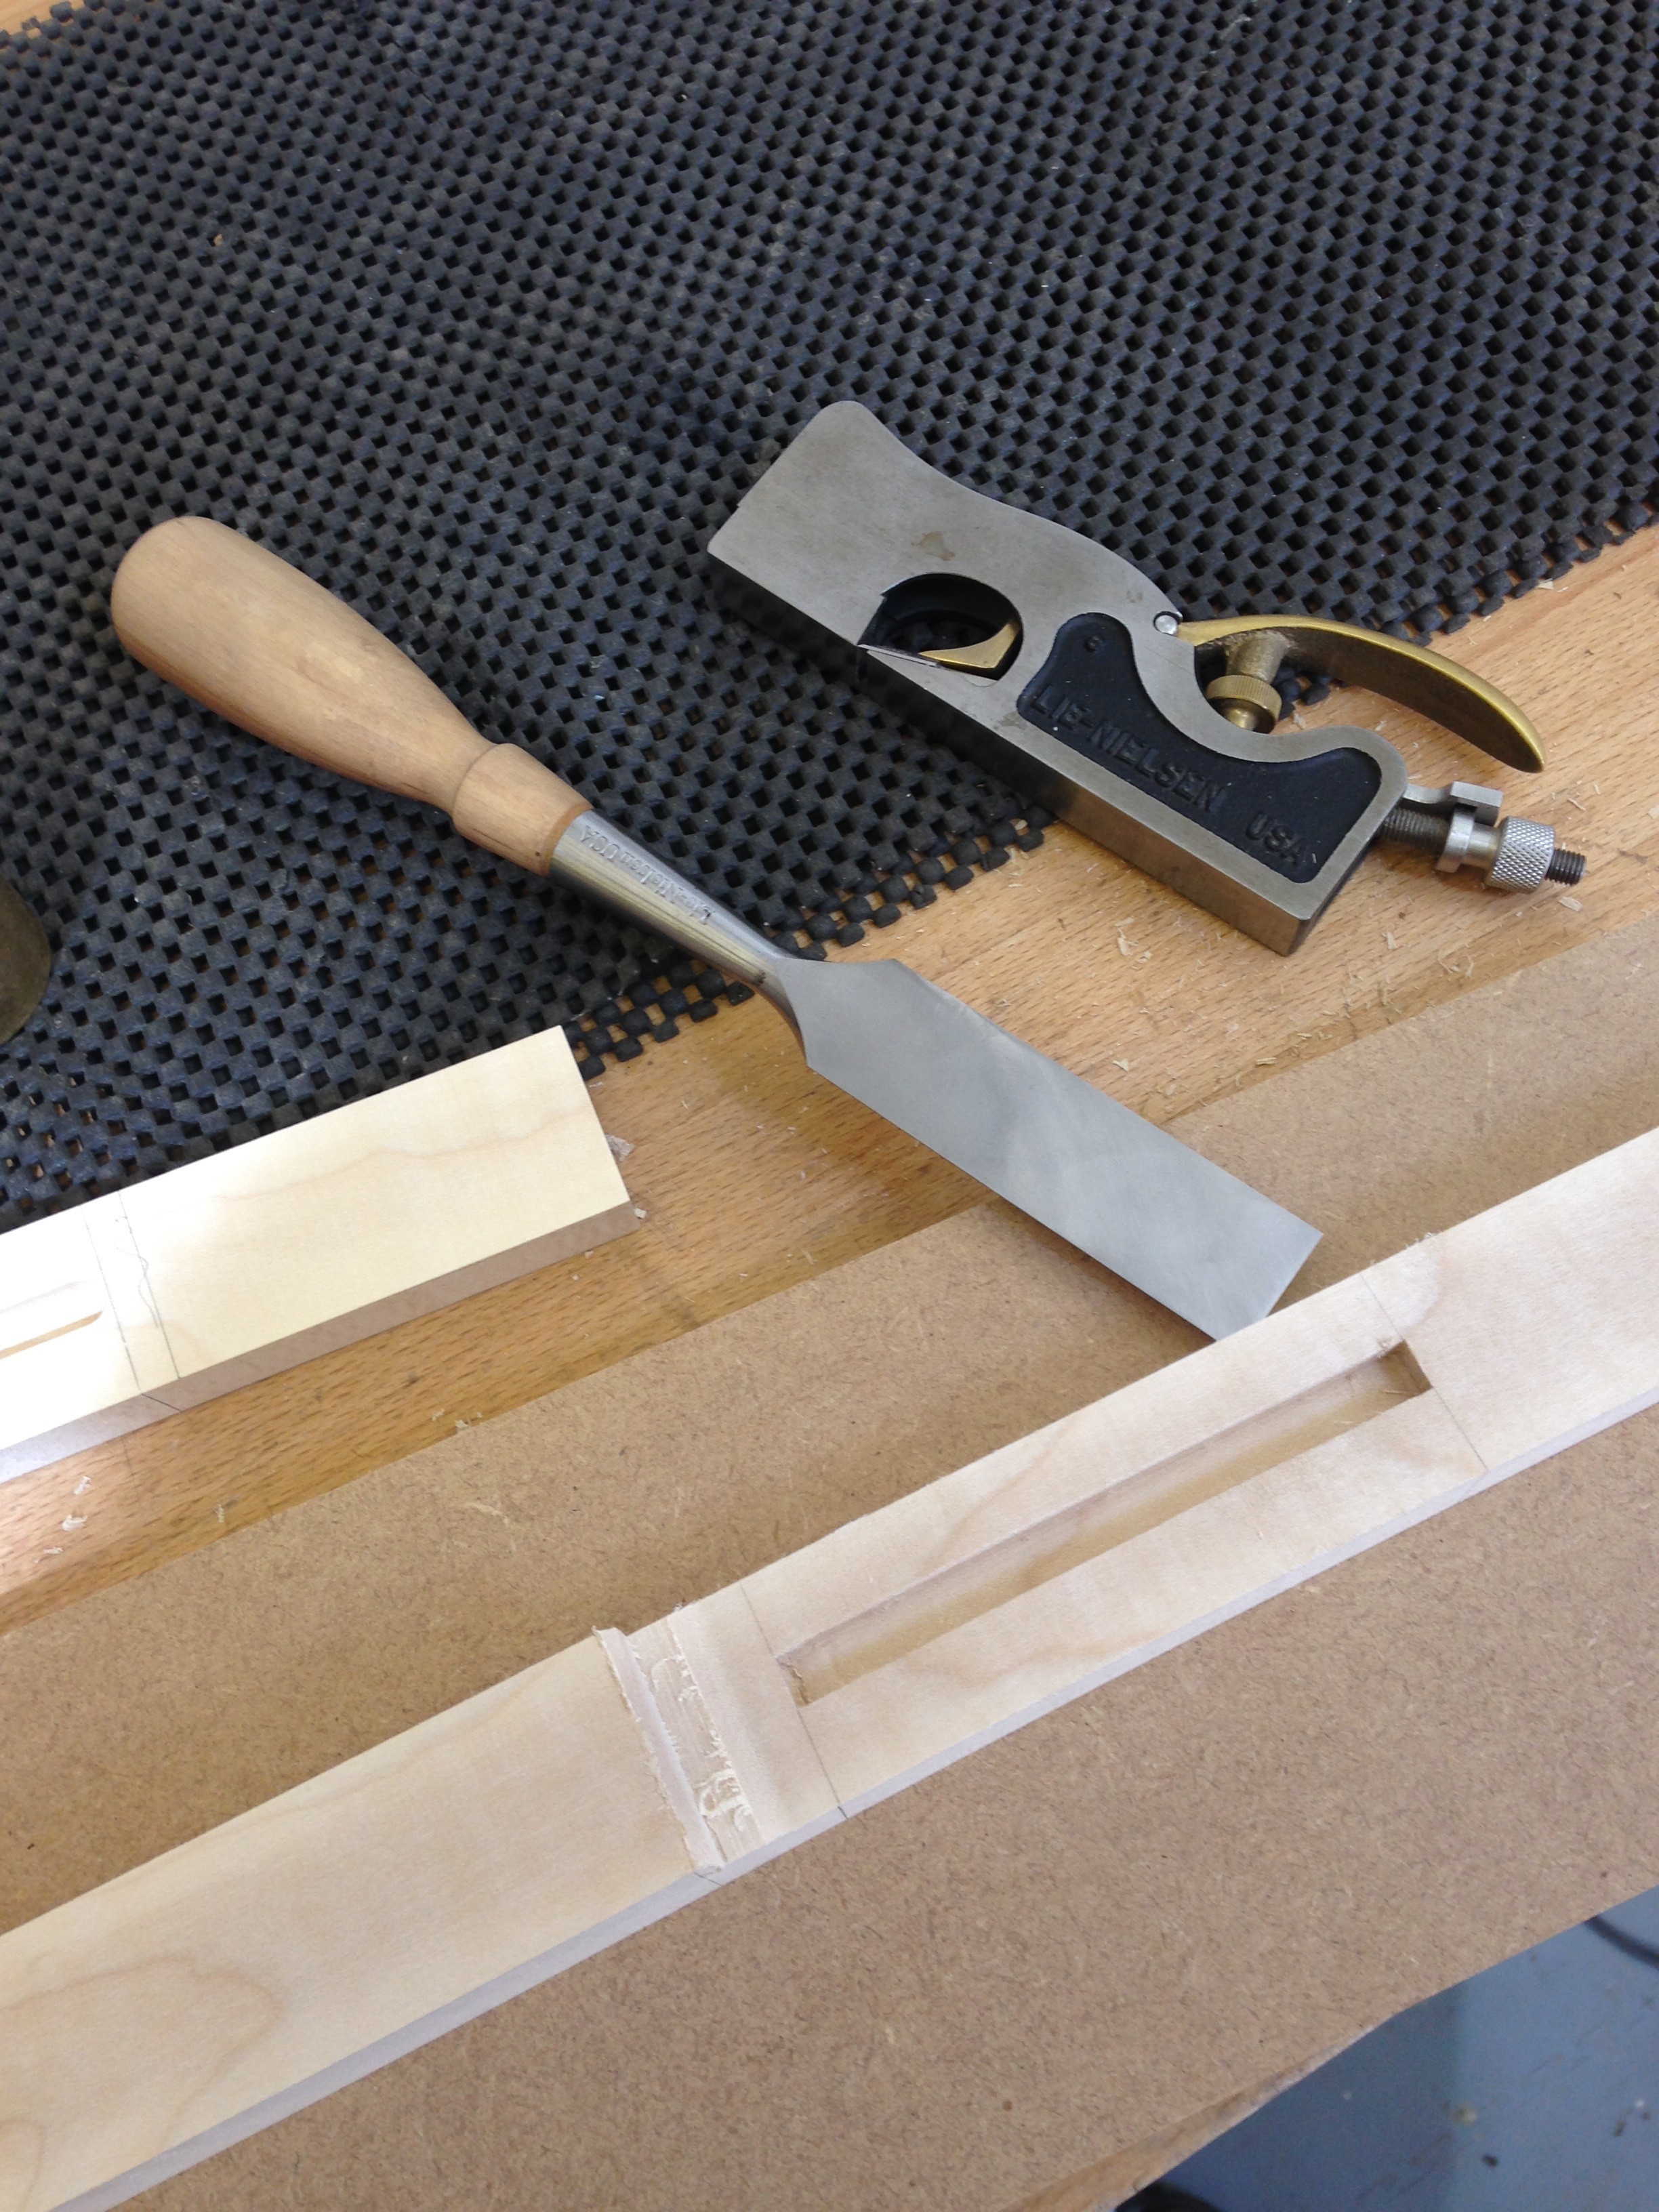 Hand tools used to cut the mortise and lip